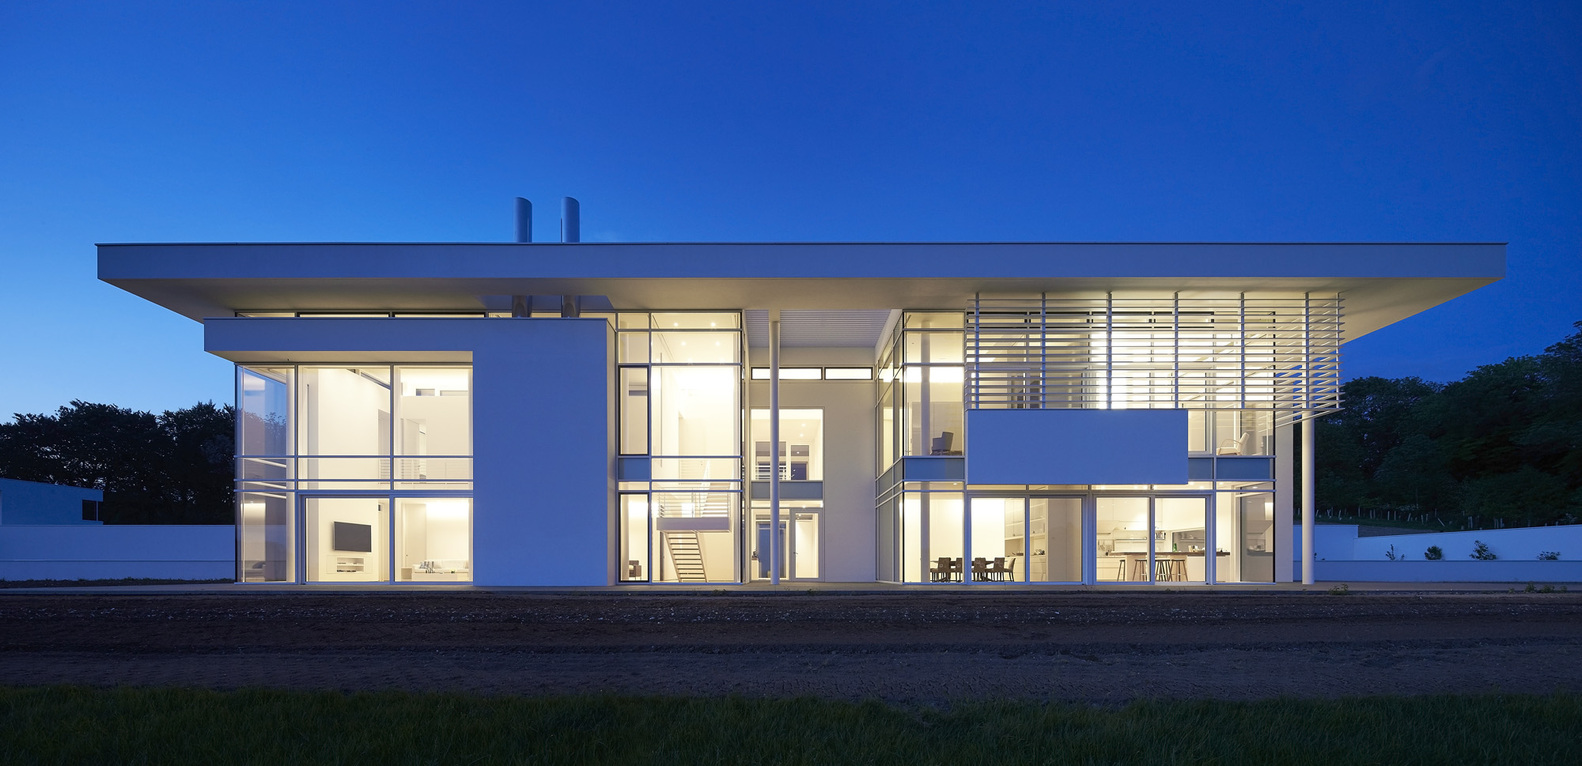 7_Oxfordshire Residence_Richard Meier & Partners_Inspirationist